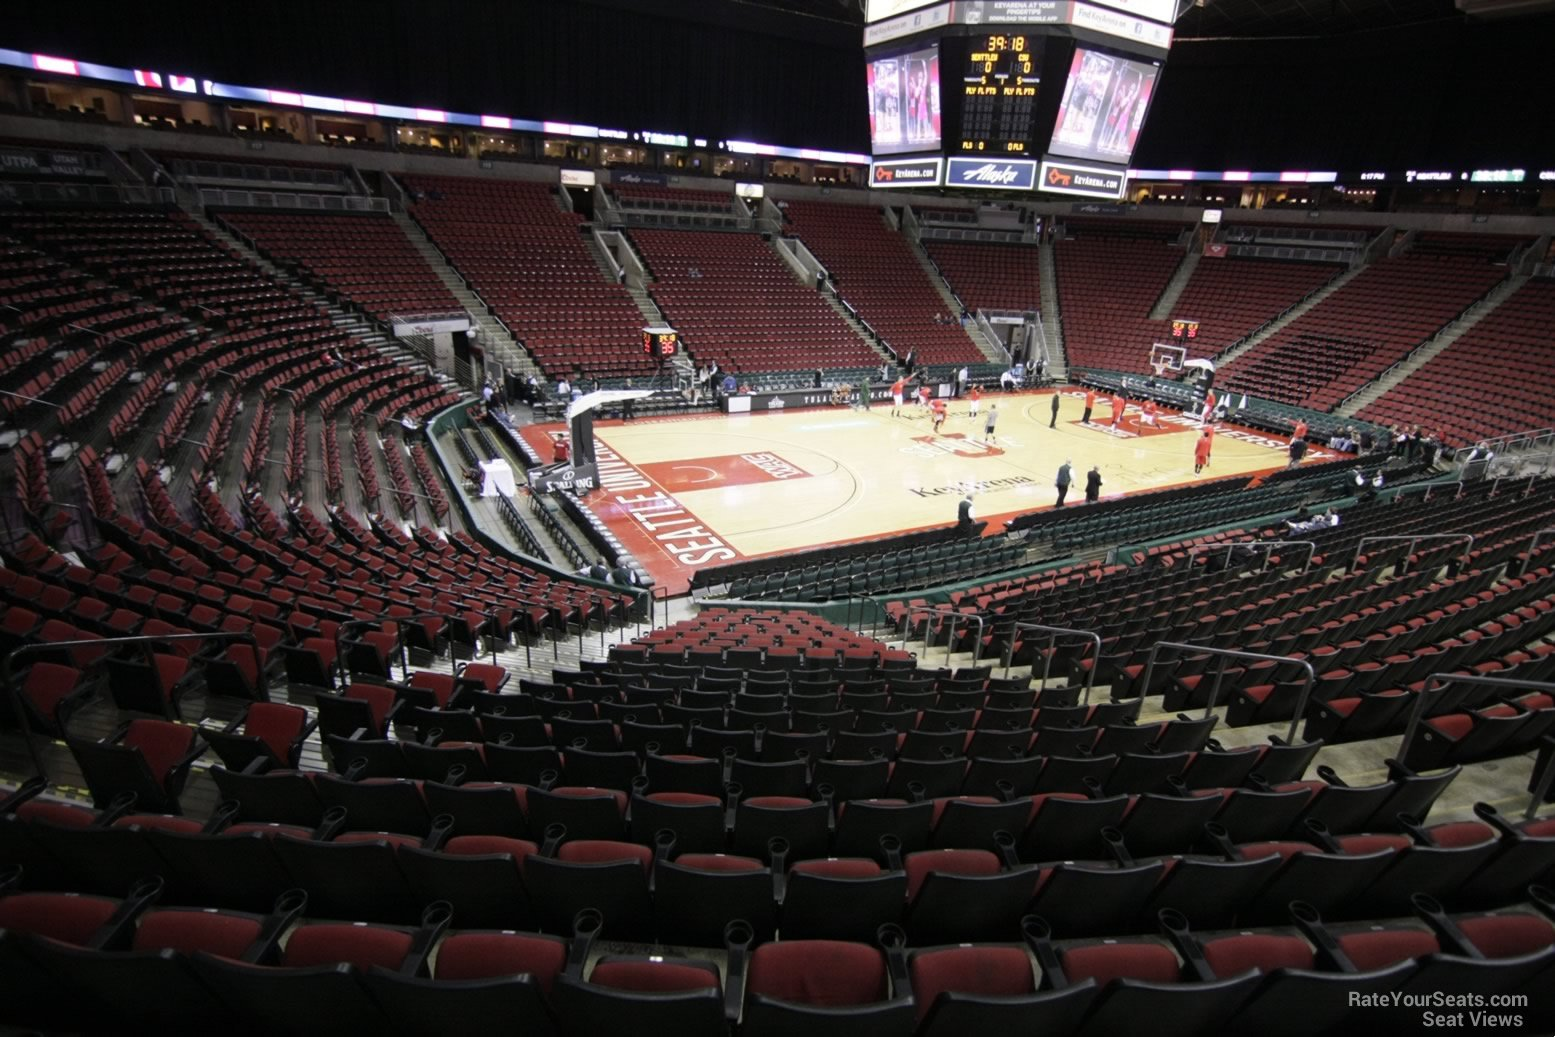 Section 125 seat view